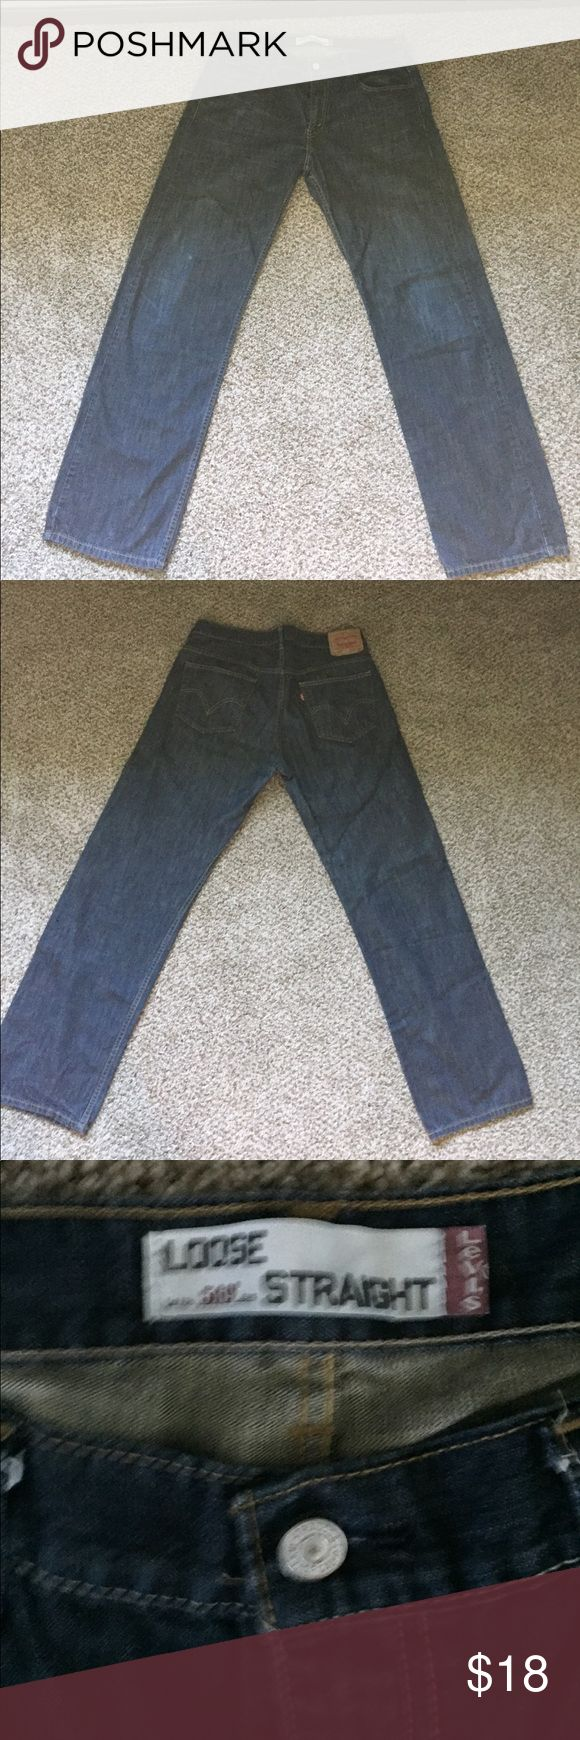 Levi's 569 Loose Straight Jeans Great condition, dark blue Levi's. Only wore a handful of times. Small spots on one leg which you can see in the picture, they aren't very noticeable when they are on. Size 34/34 Levi's Jeans Straight